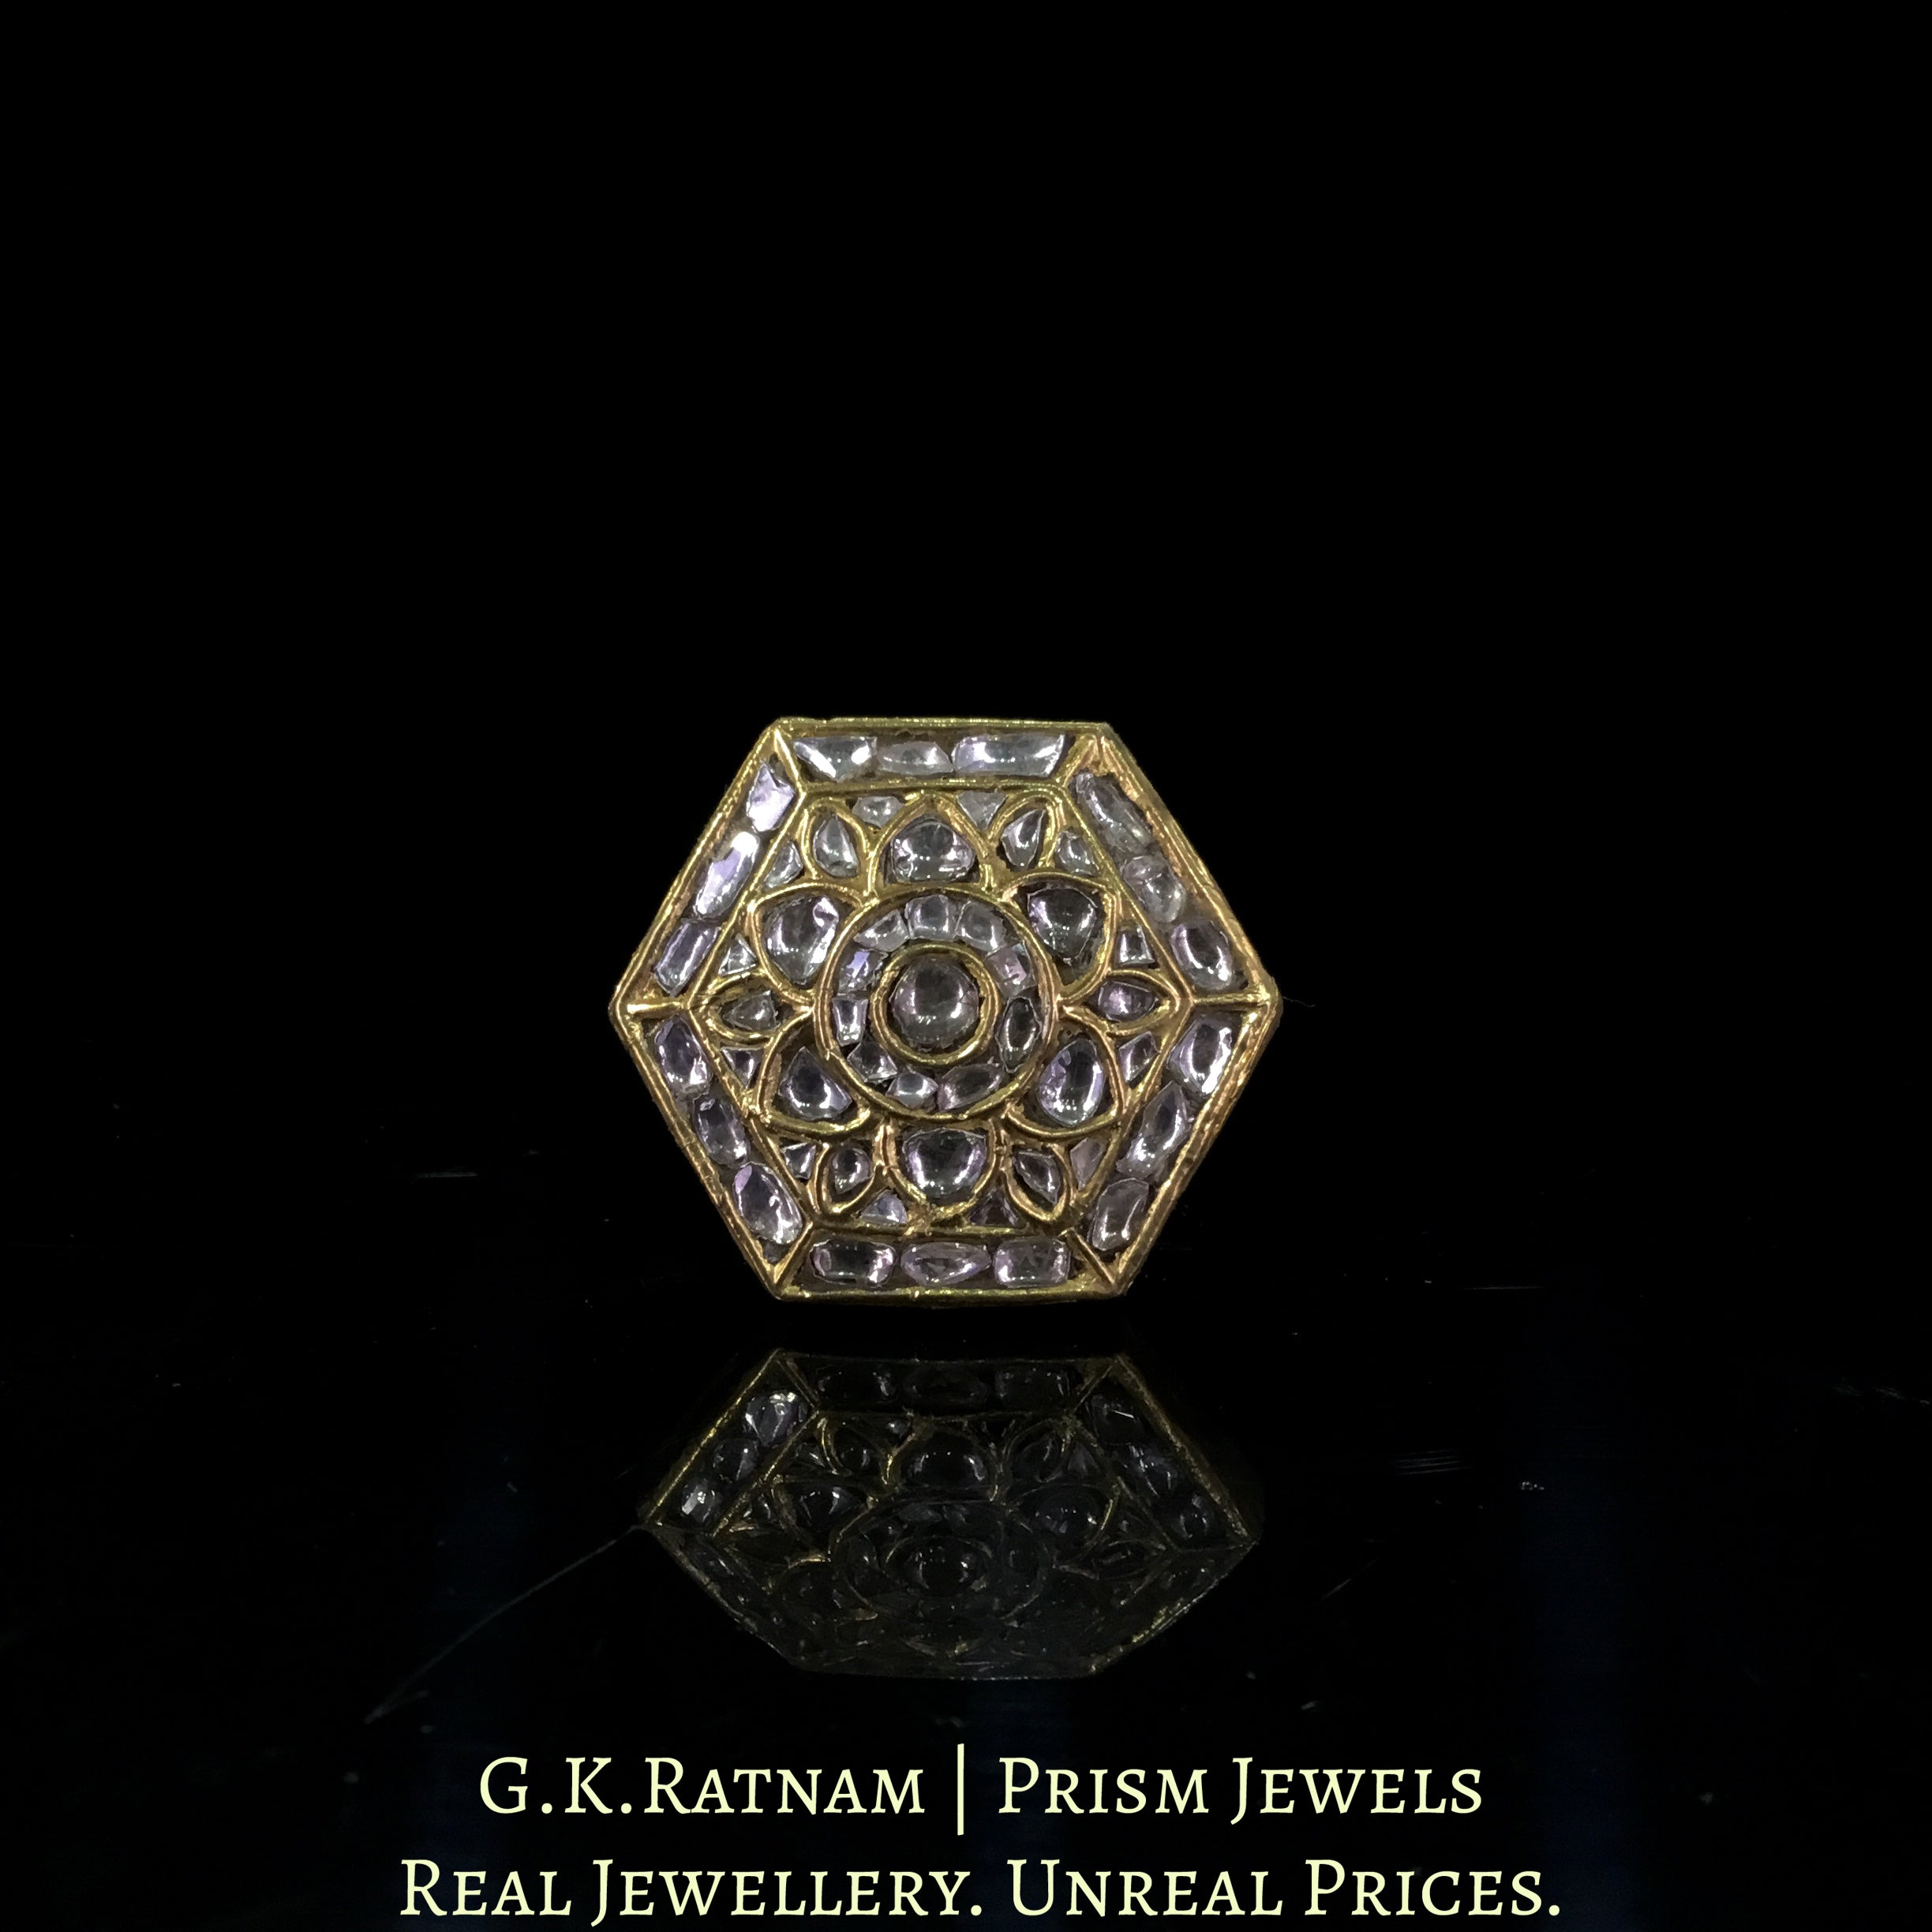 23k Gold and Diamond Polki Octagonal Ring